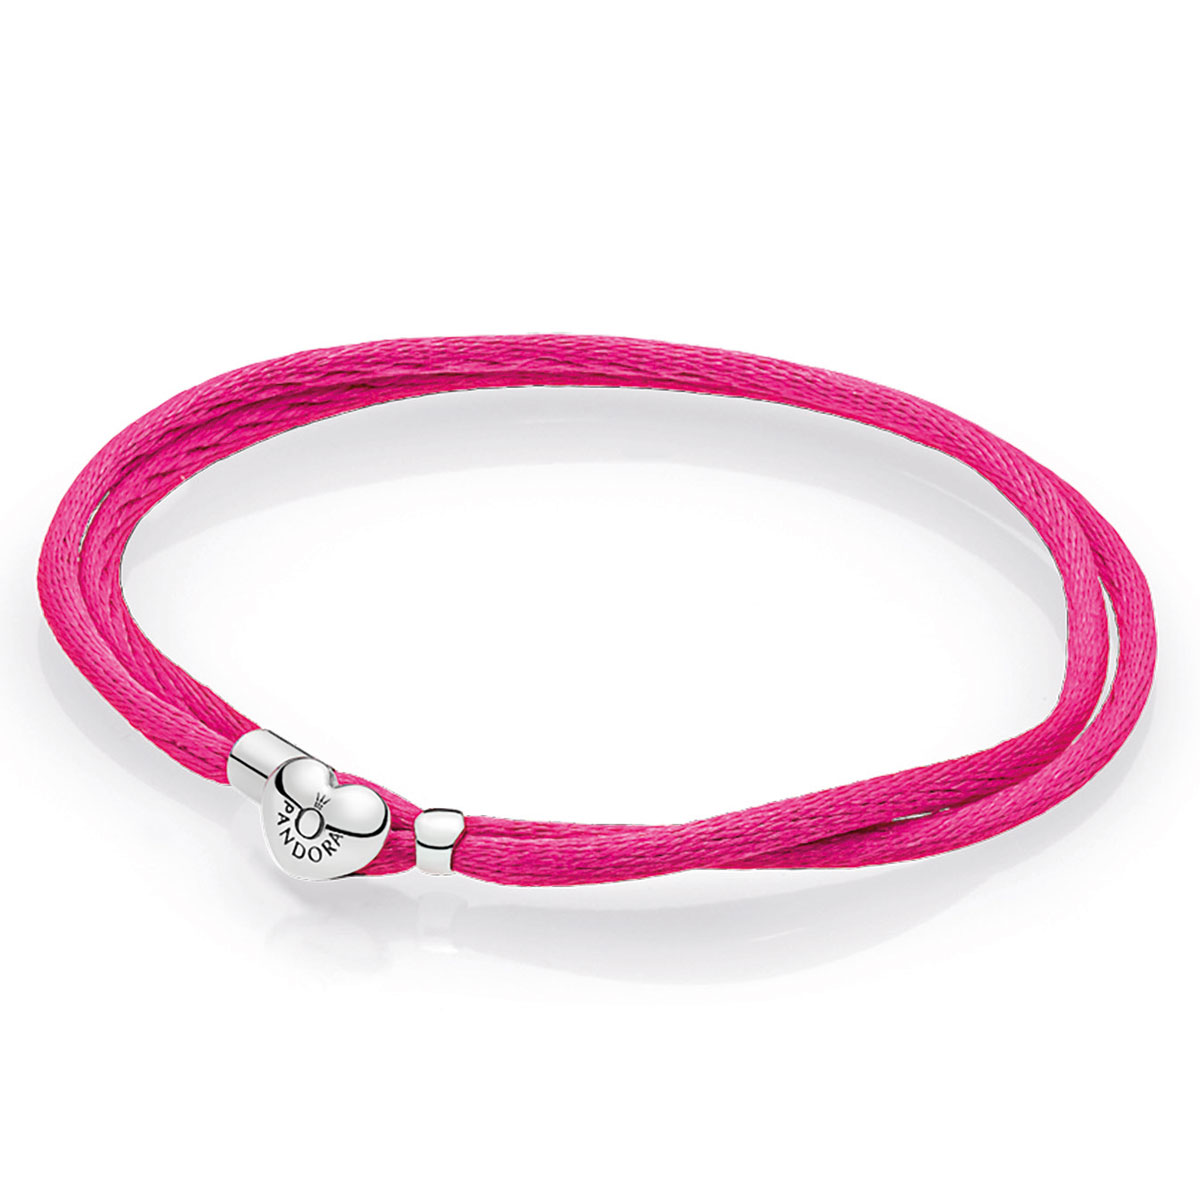 144d6400c ... charm bracelet 8c8b8 d7740 where to buy pandora hot pink fabric cord  bracelet 03850 15ae2 ...